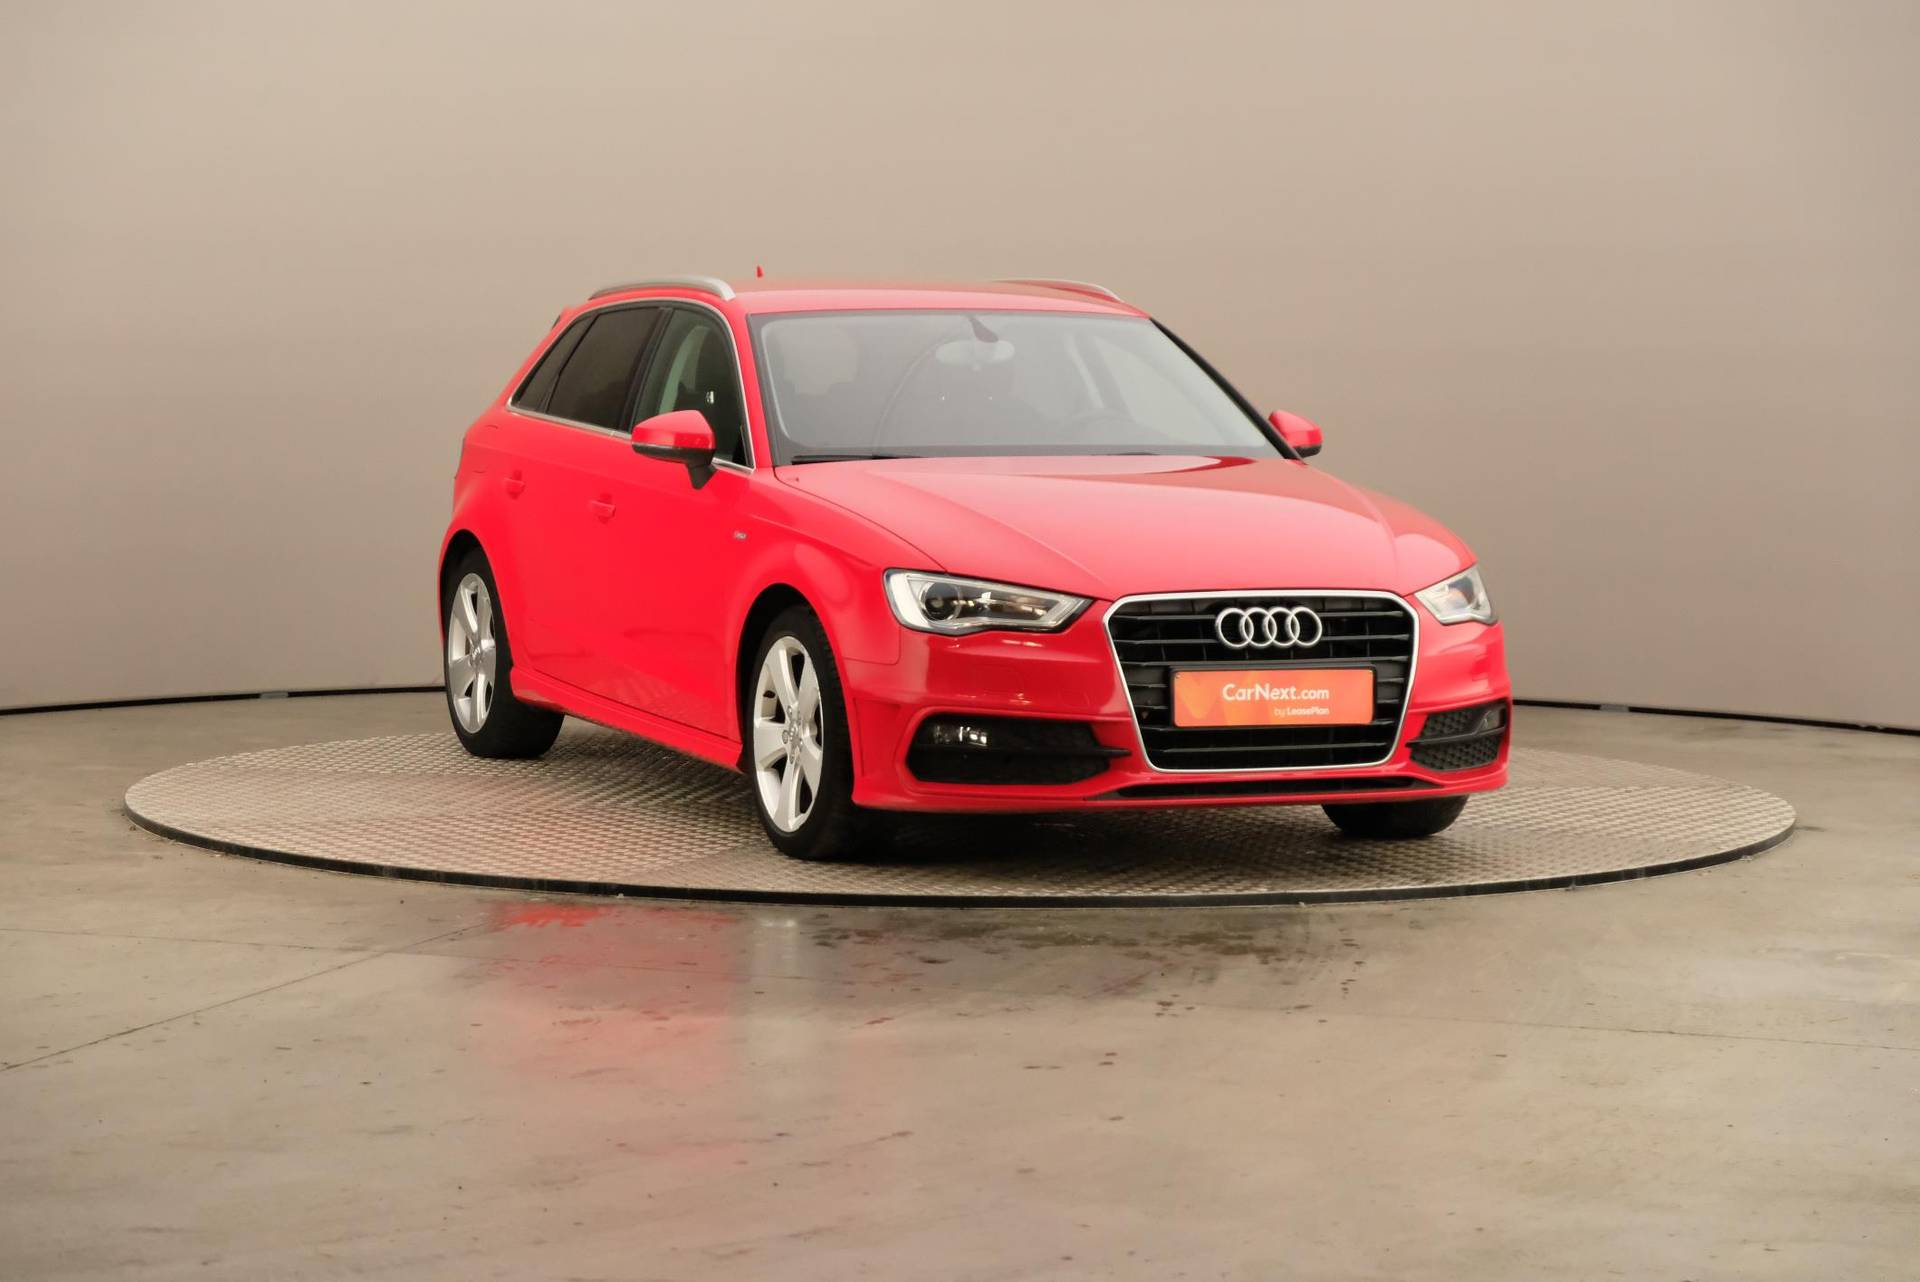 Audi A3 1.6 TDi Ambition PACK SPORT DESIGN XENON GPS PDC CRUISE CONTROL, 360-image29